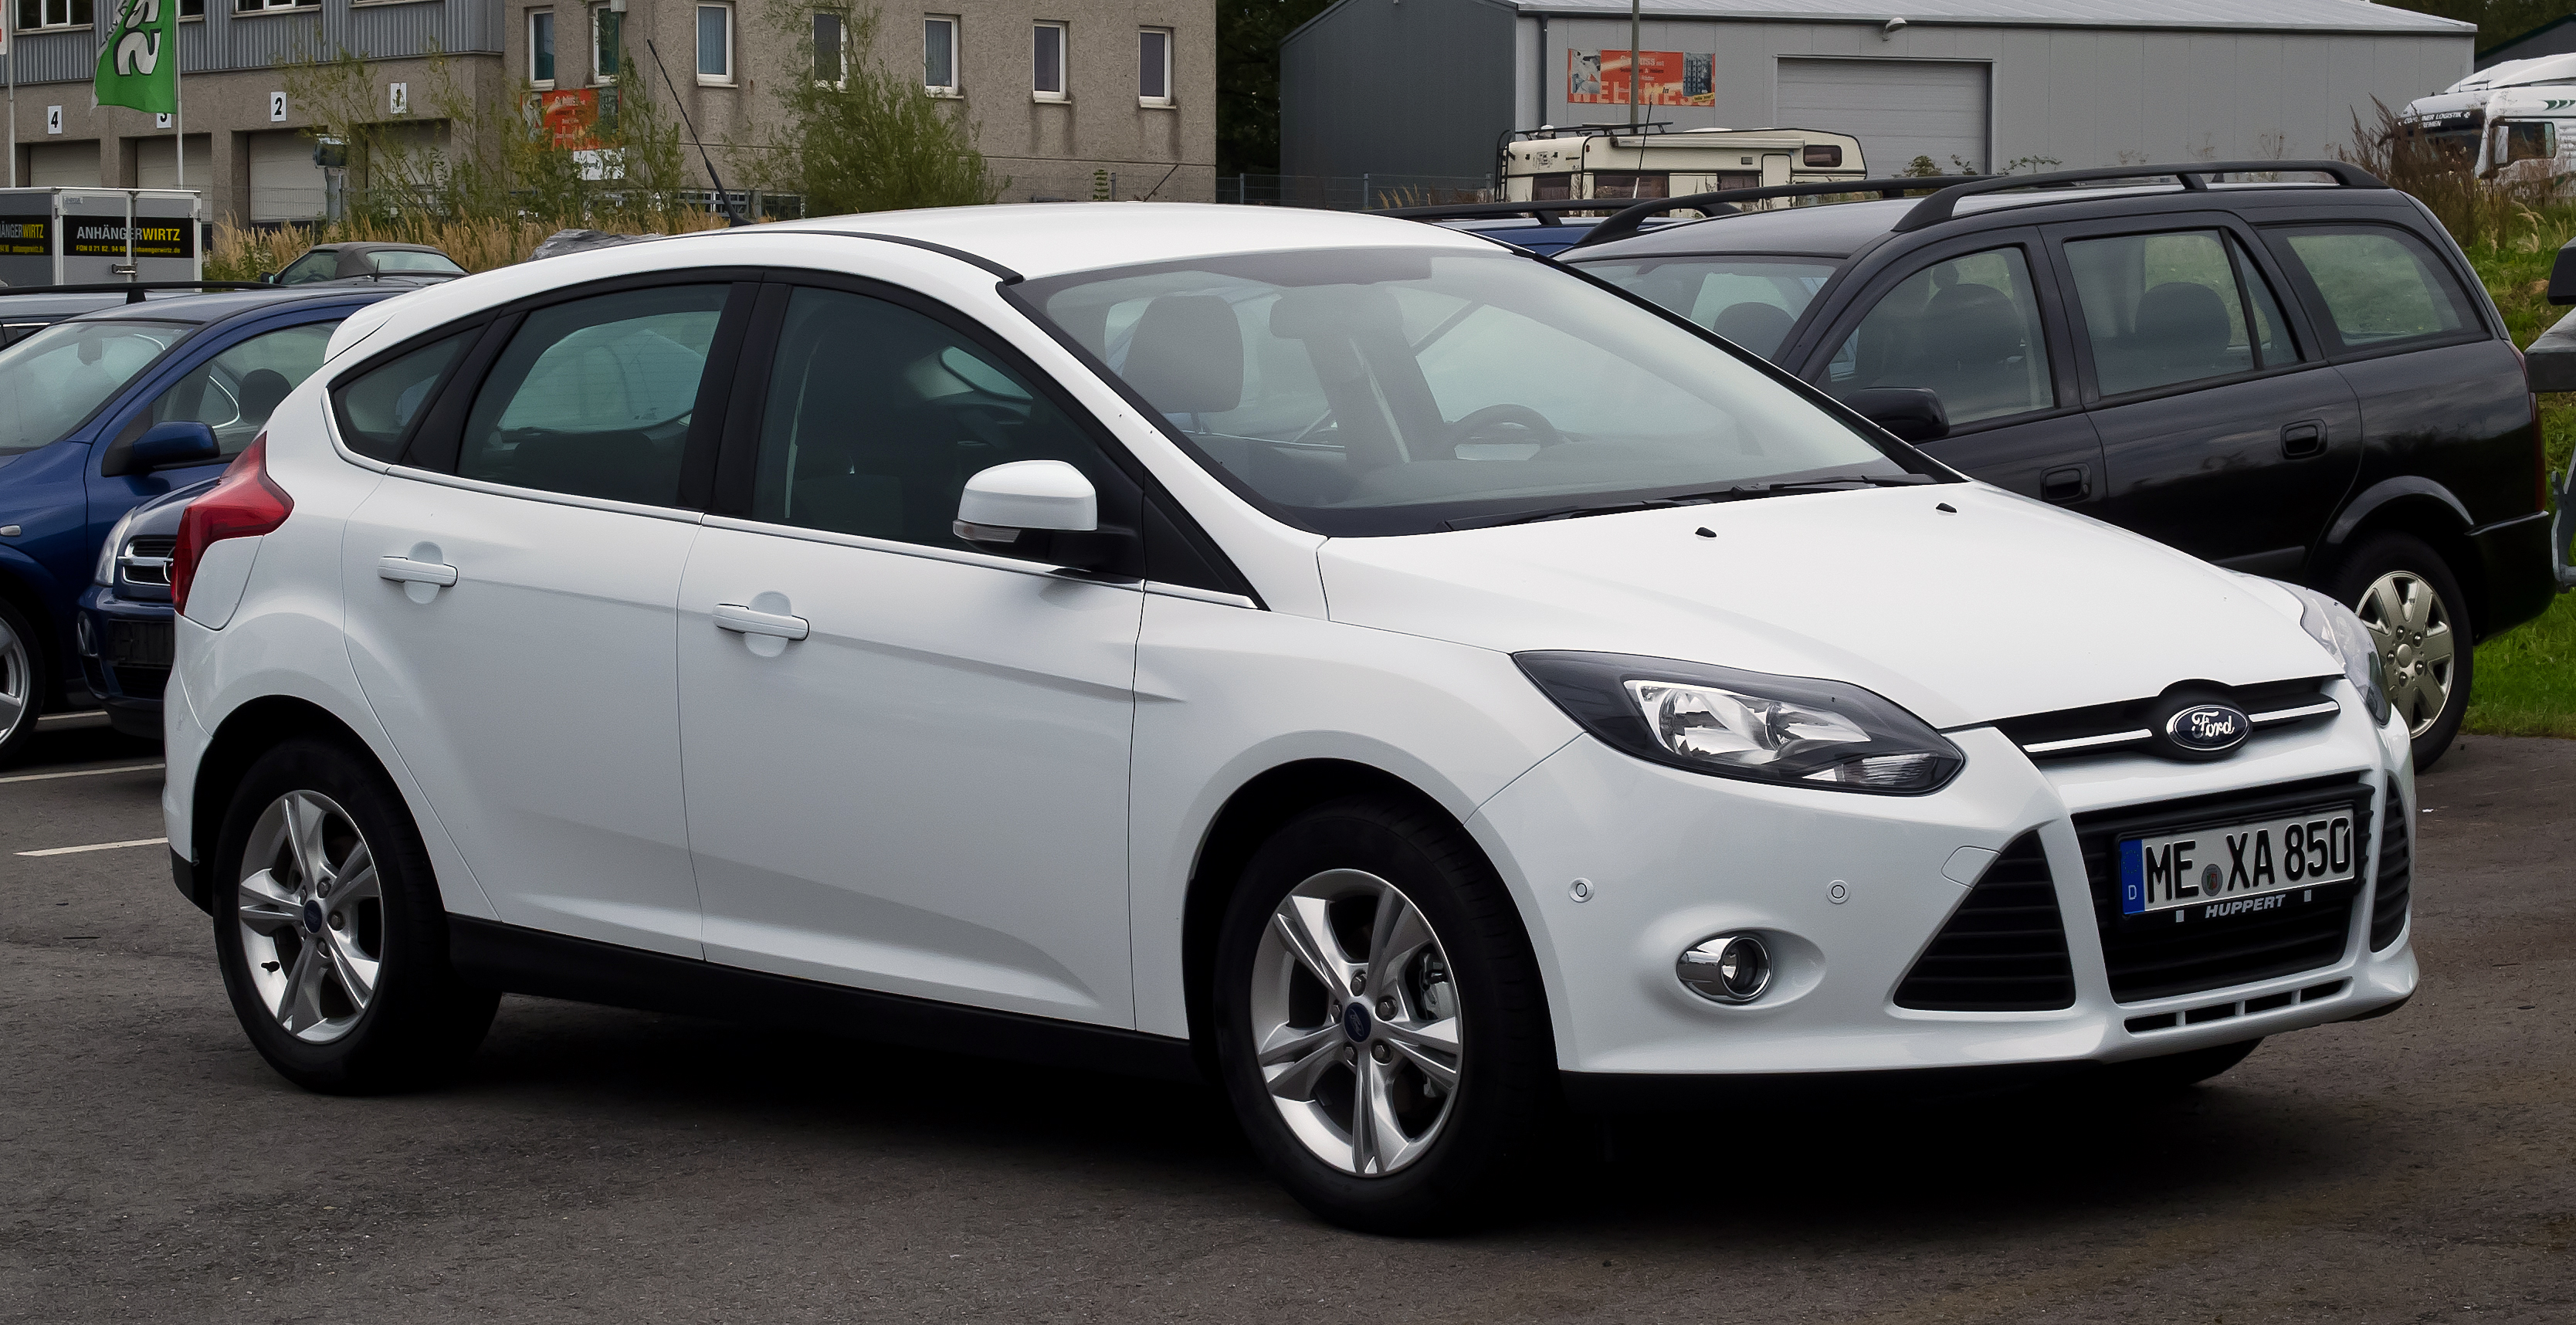 ford focus images #1